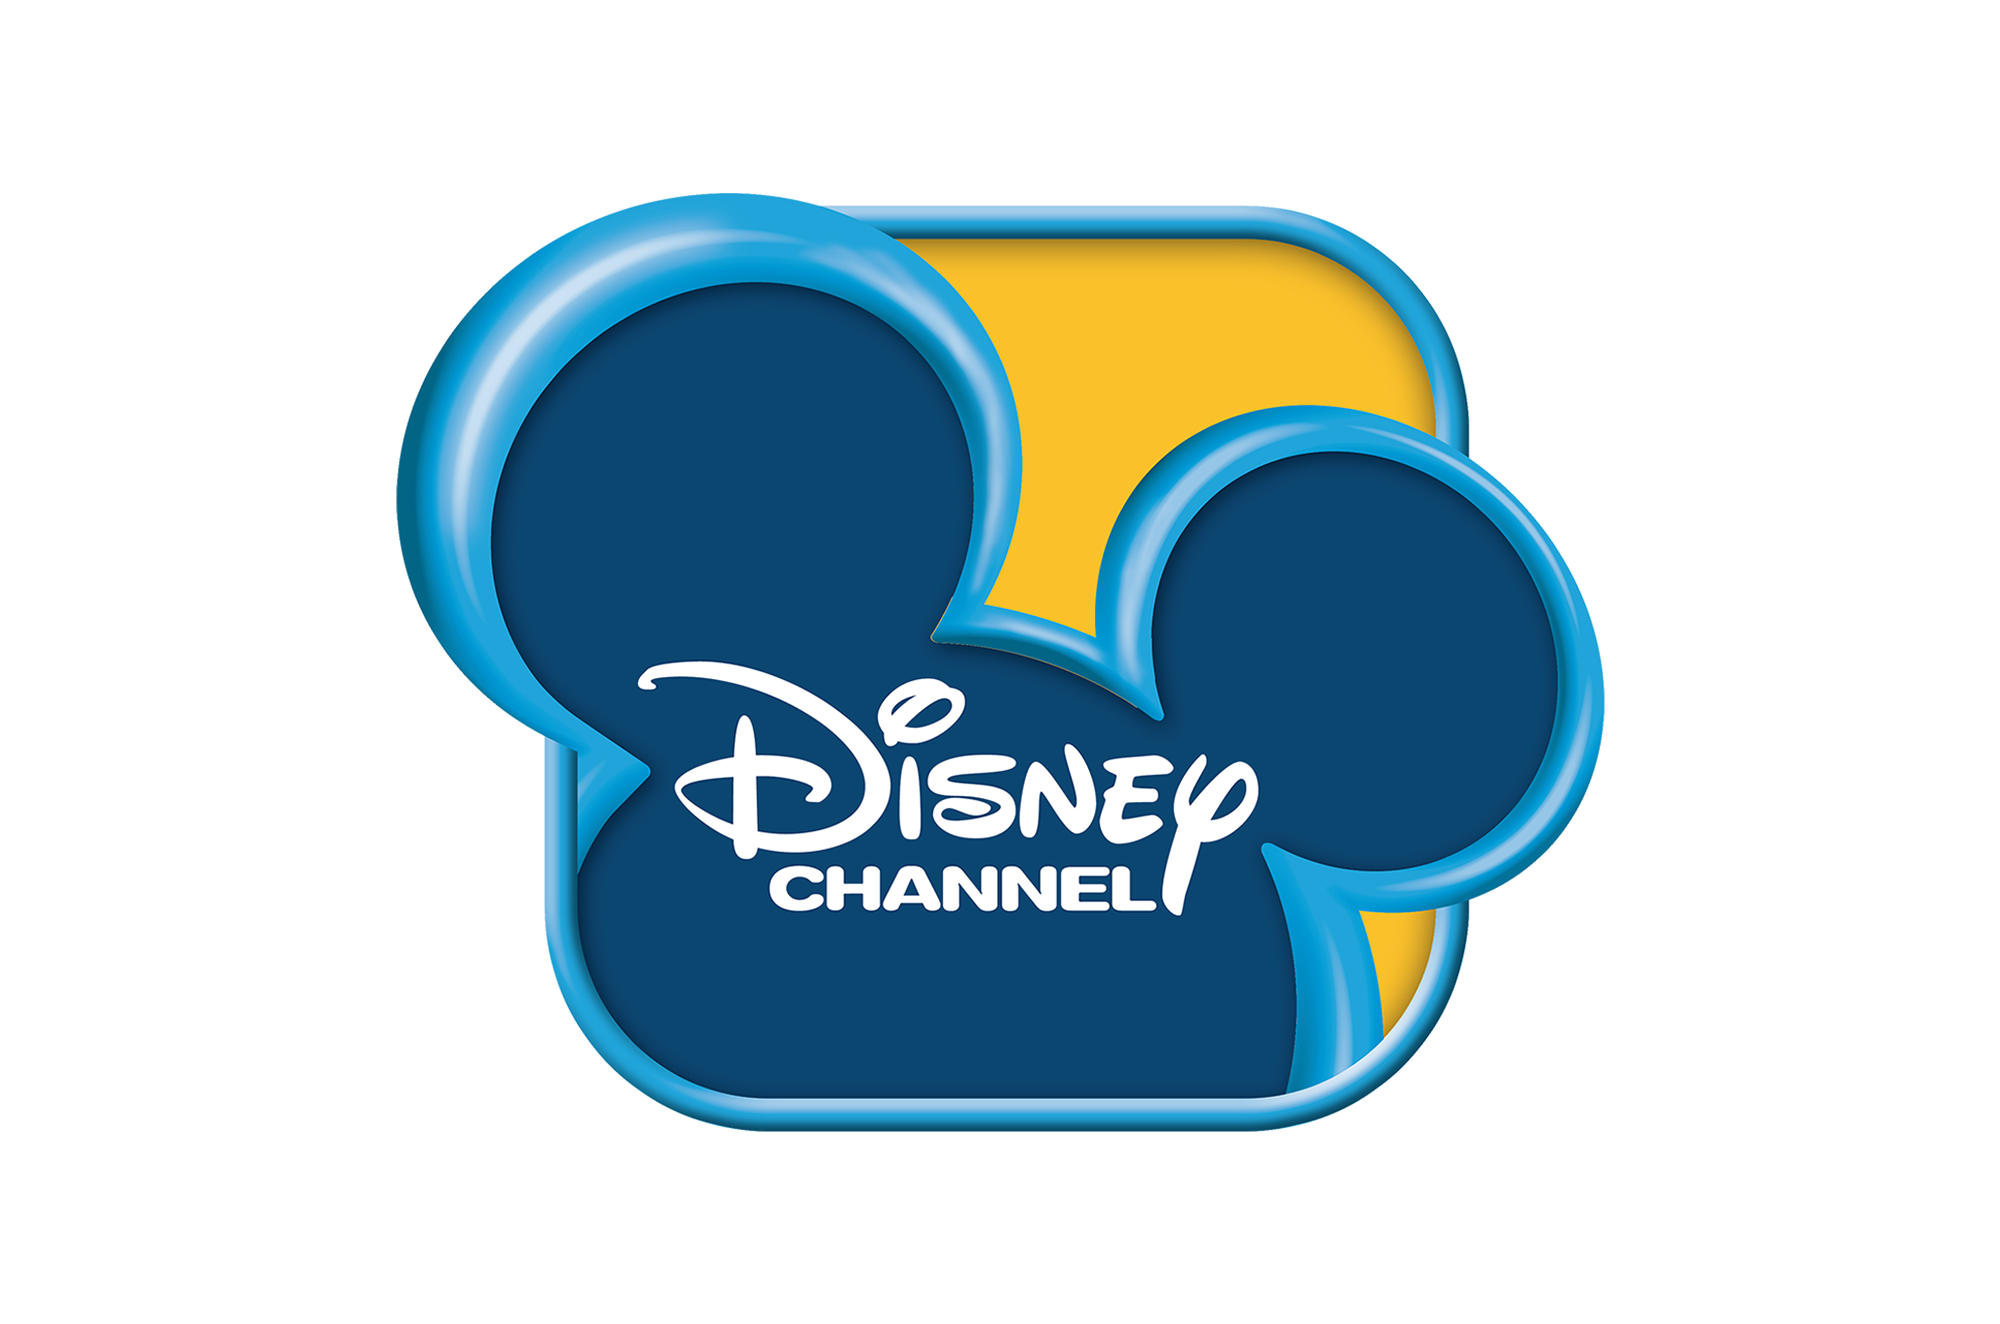 kosmotemplatedisneychannel.png